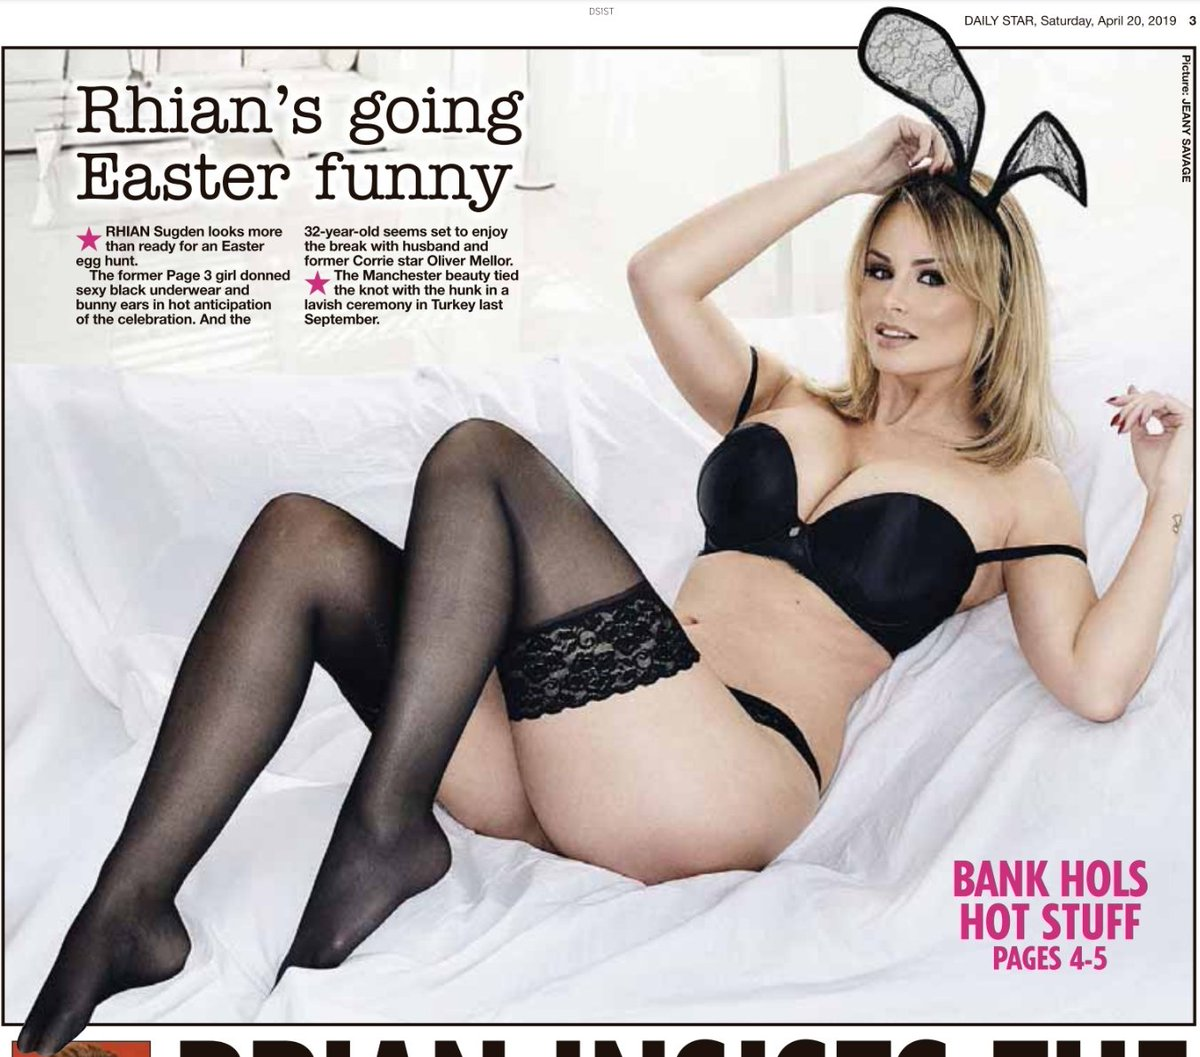 RT @Page3Classics: Hoppity hop hop. It's @Rhianmarie on Page 3 of Saturday's Daily Star. https://t.co/vomMZz6lTb